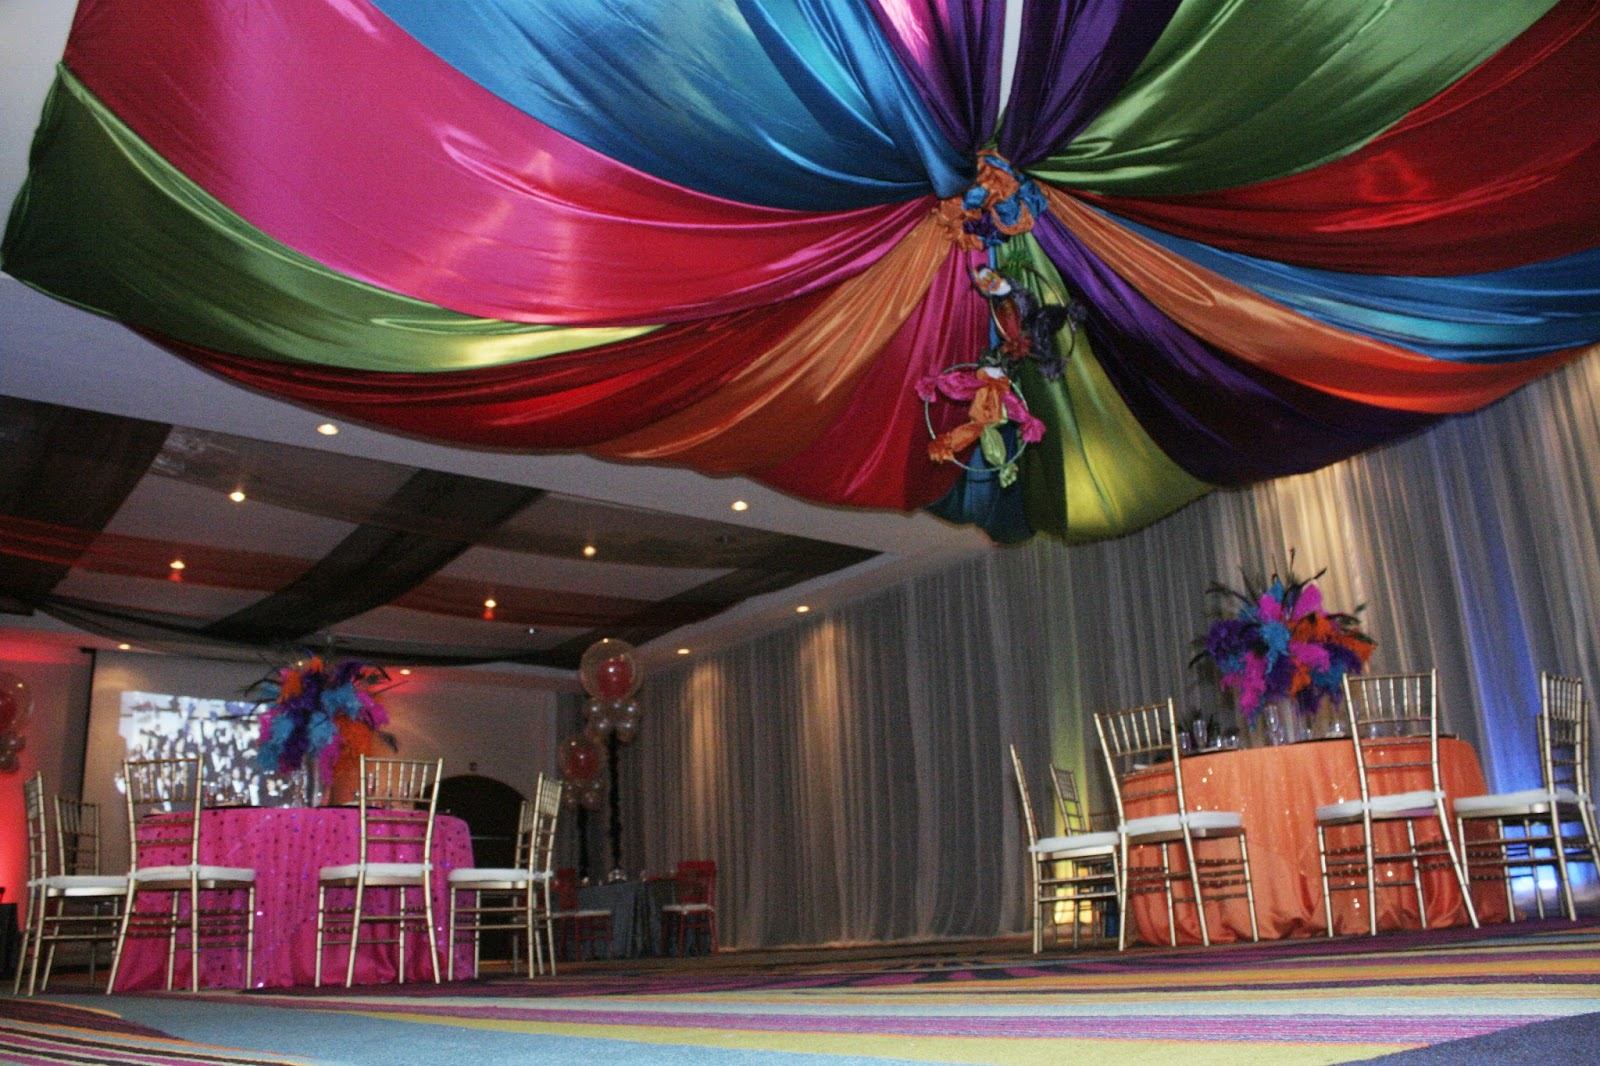 Decoracion de techos para fiestas infantiles for 3 fifty eight salon